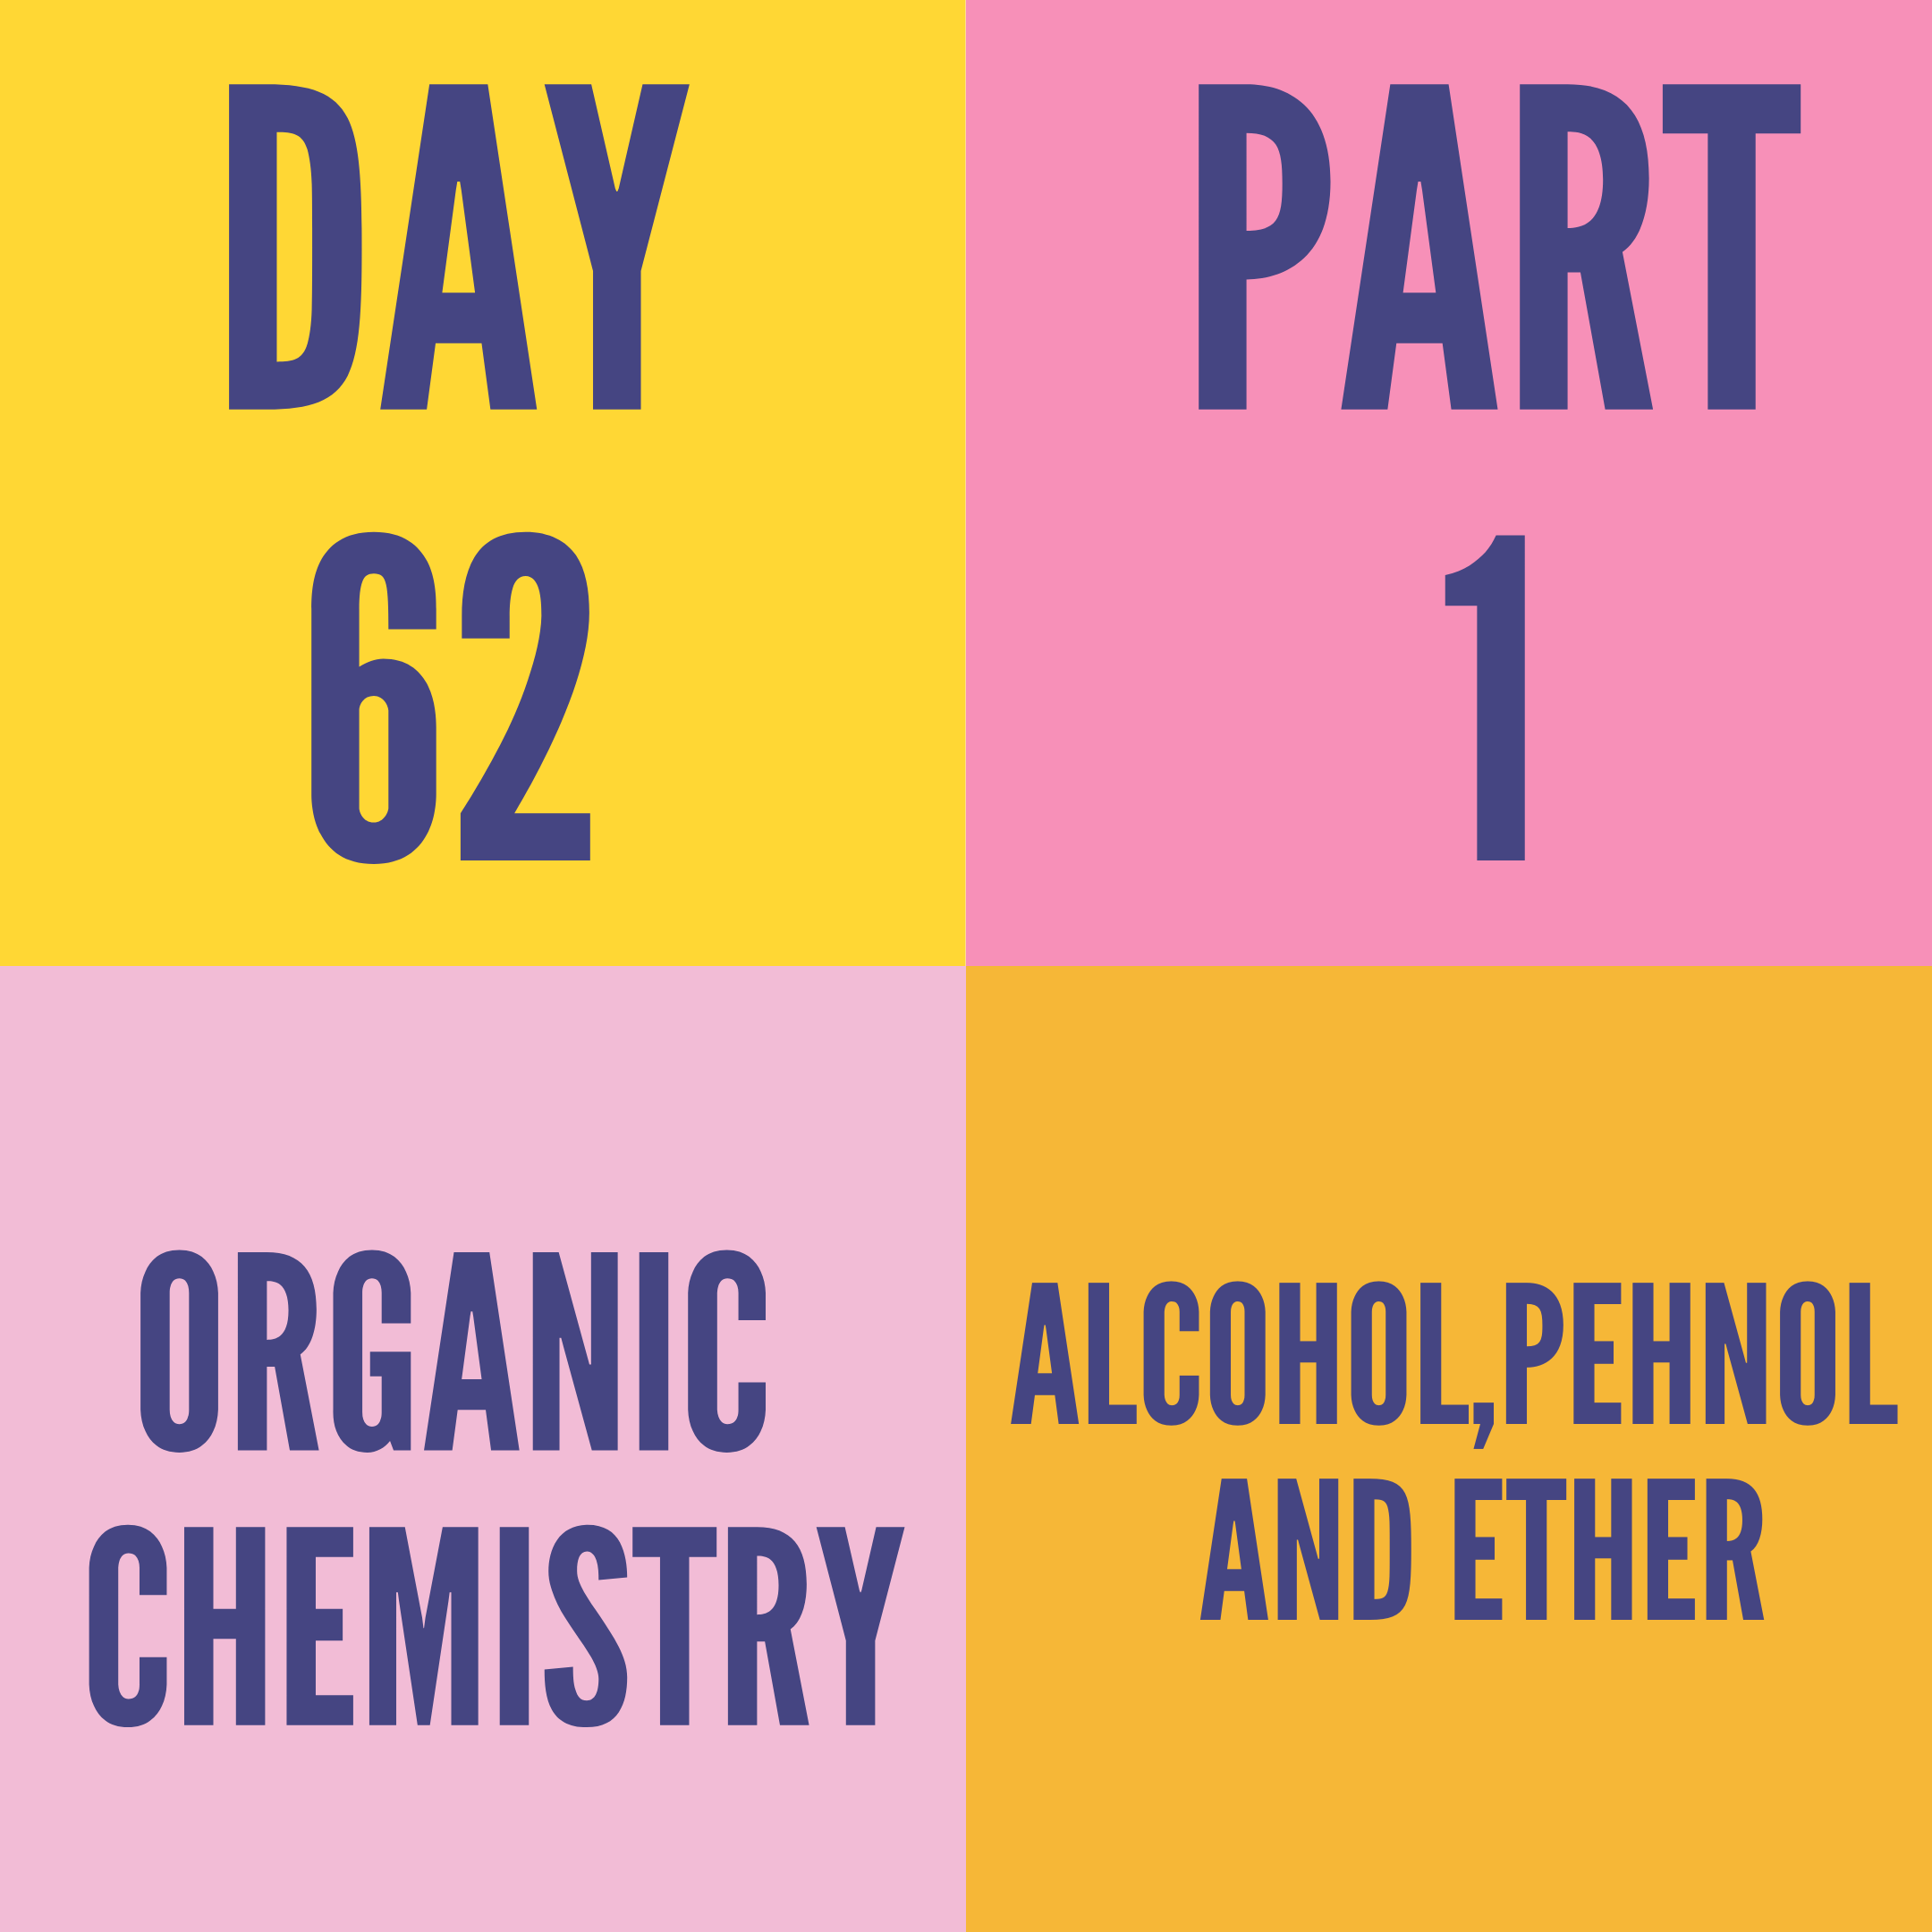 DAY-62 PART-1 ALCOH0L,PEHNOL AND ETHER